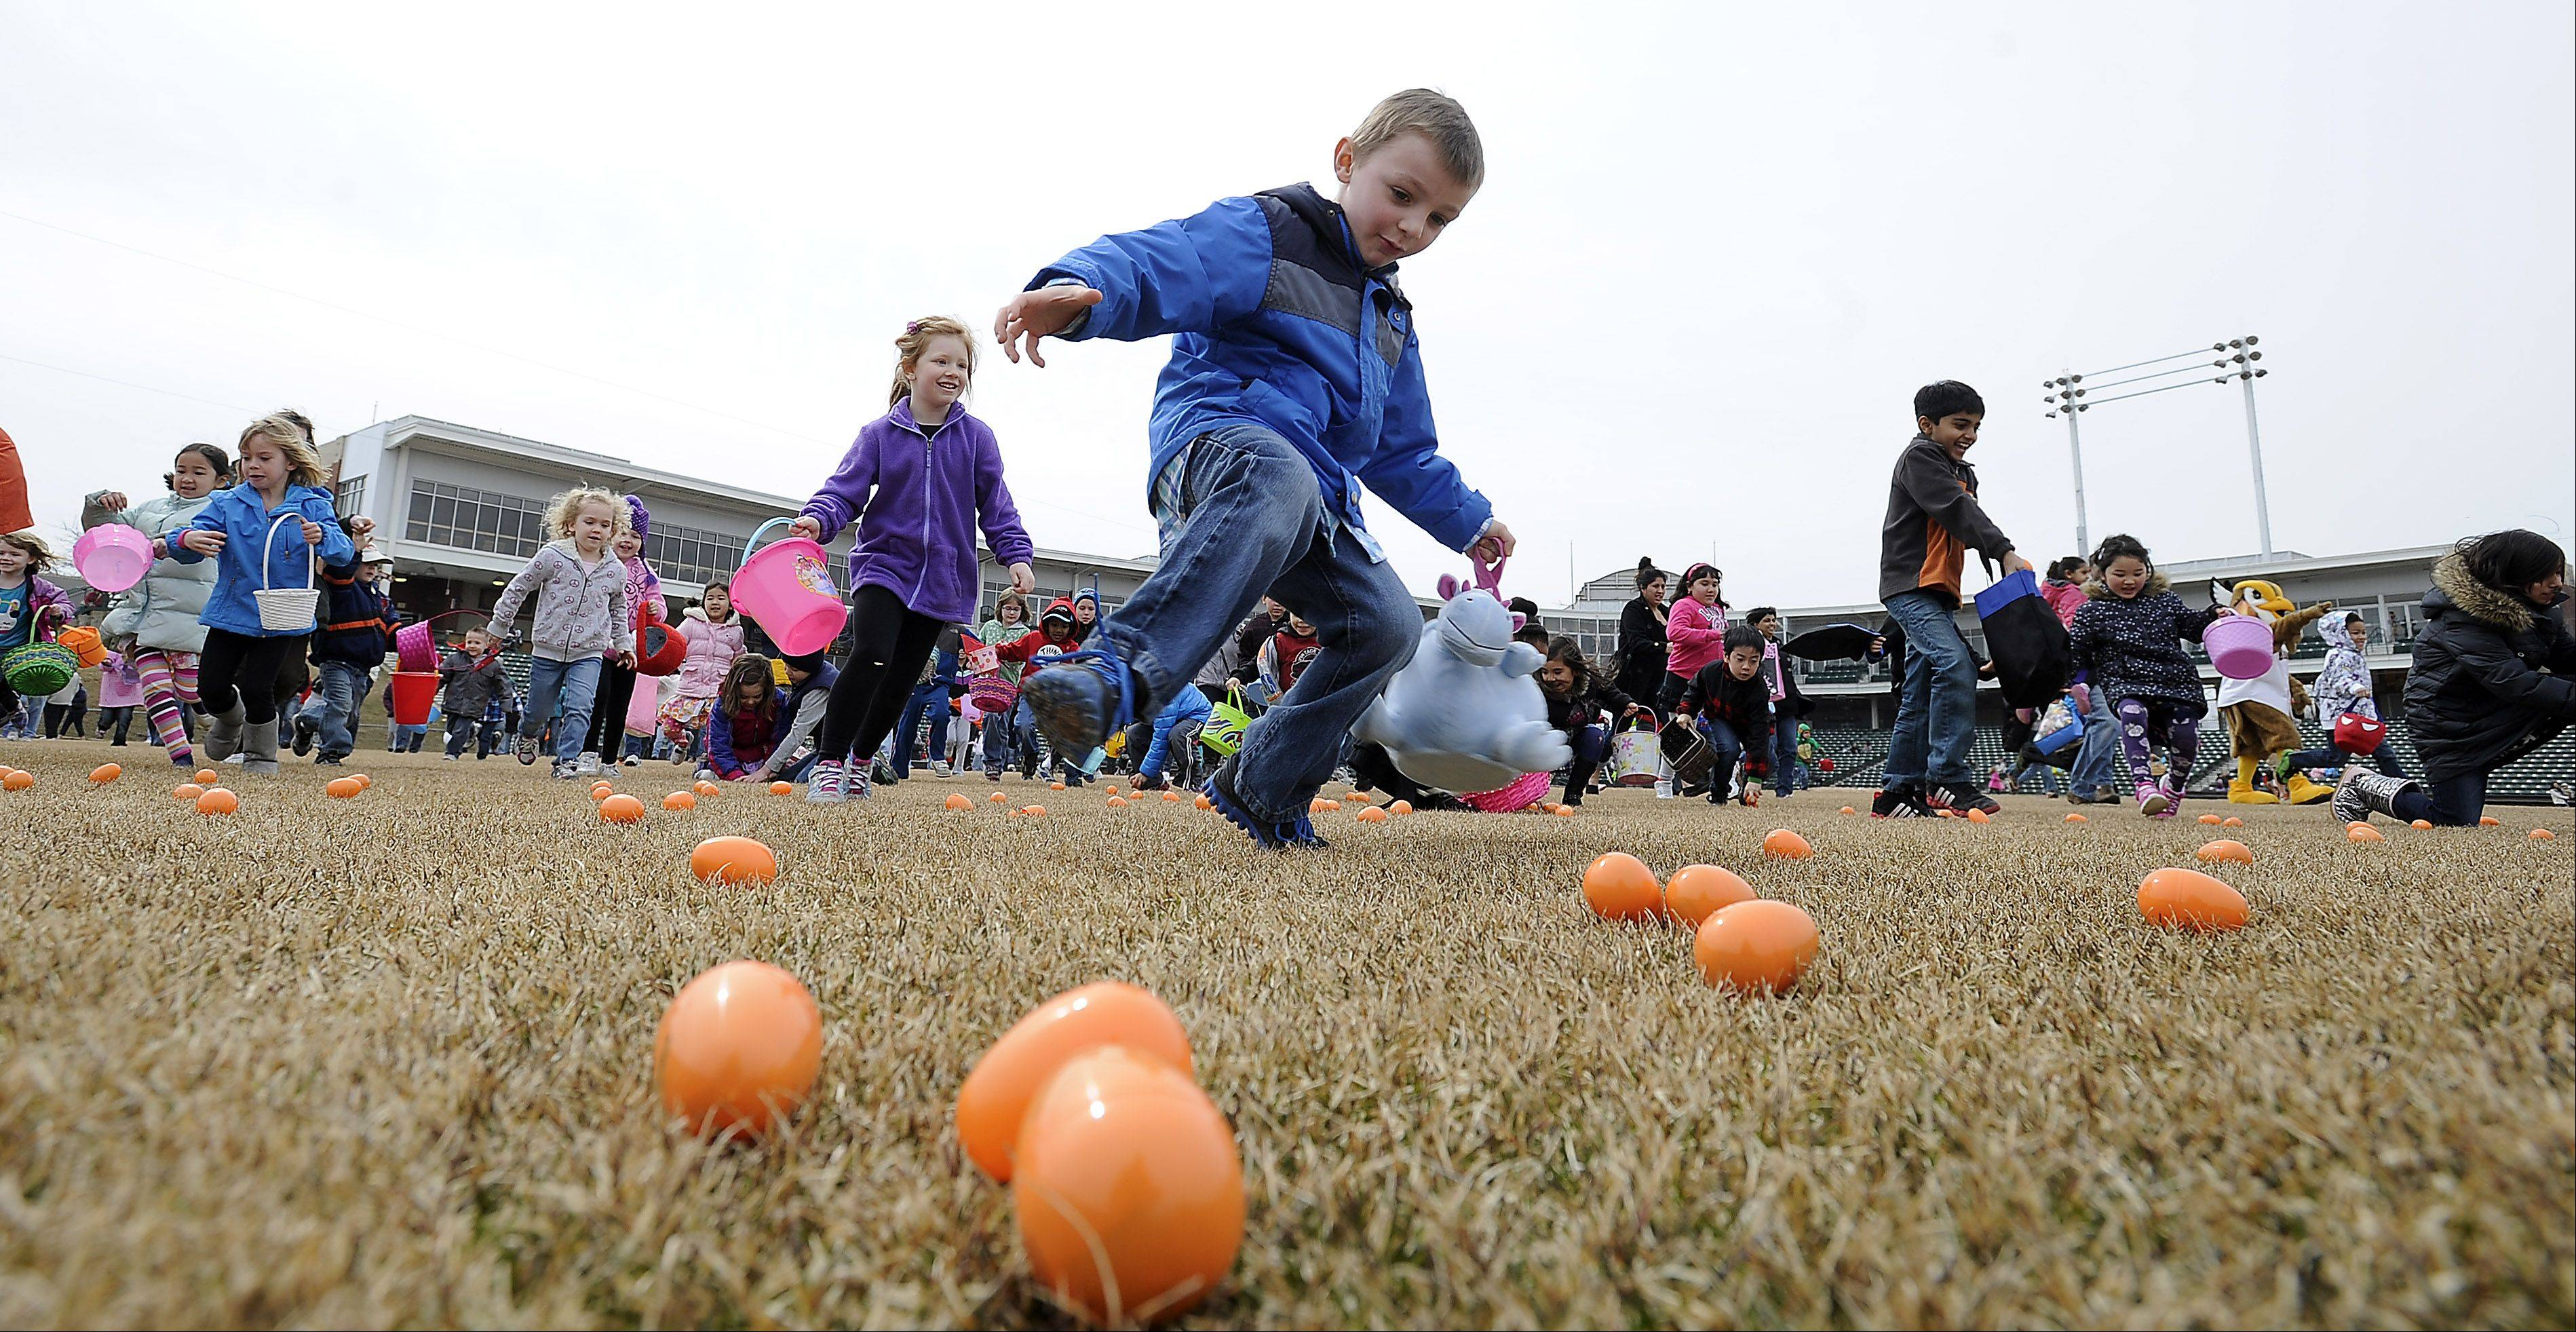 Logan Entzminger, 6, of Bartlett puts on the brakes as he rushes to scoop up as many Easter eggs as possible, he got only six in the mad rush at the Schaumburg Boomers 2nd annual Easter egg hunt on Saturday.